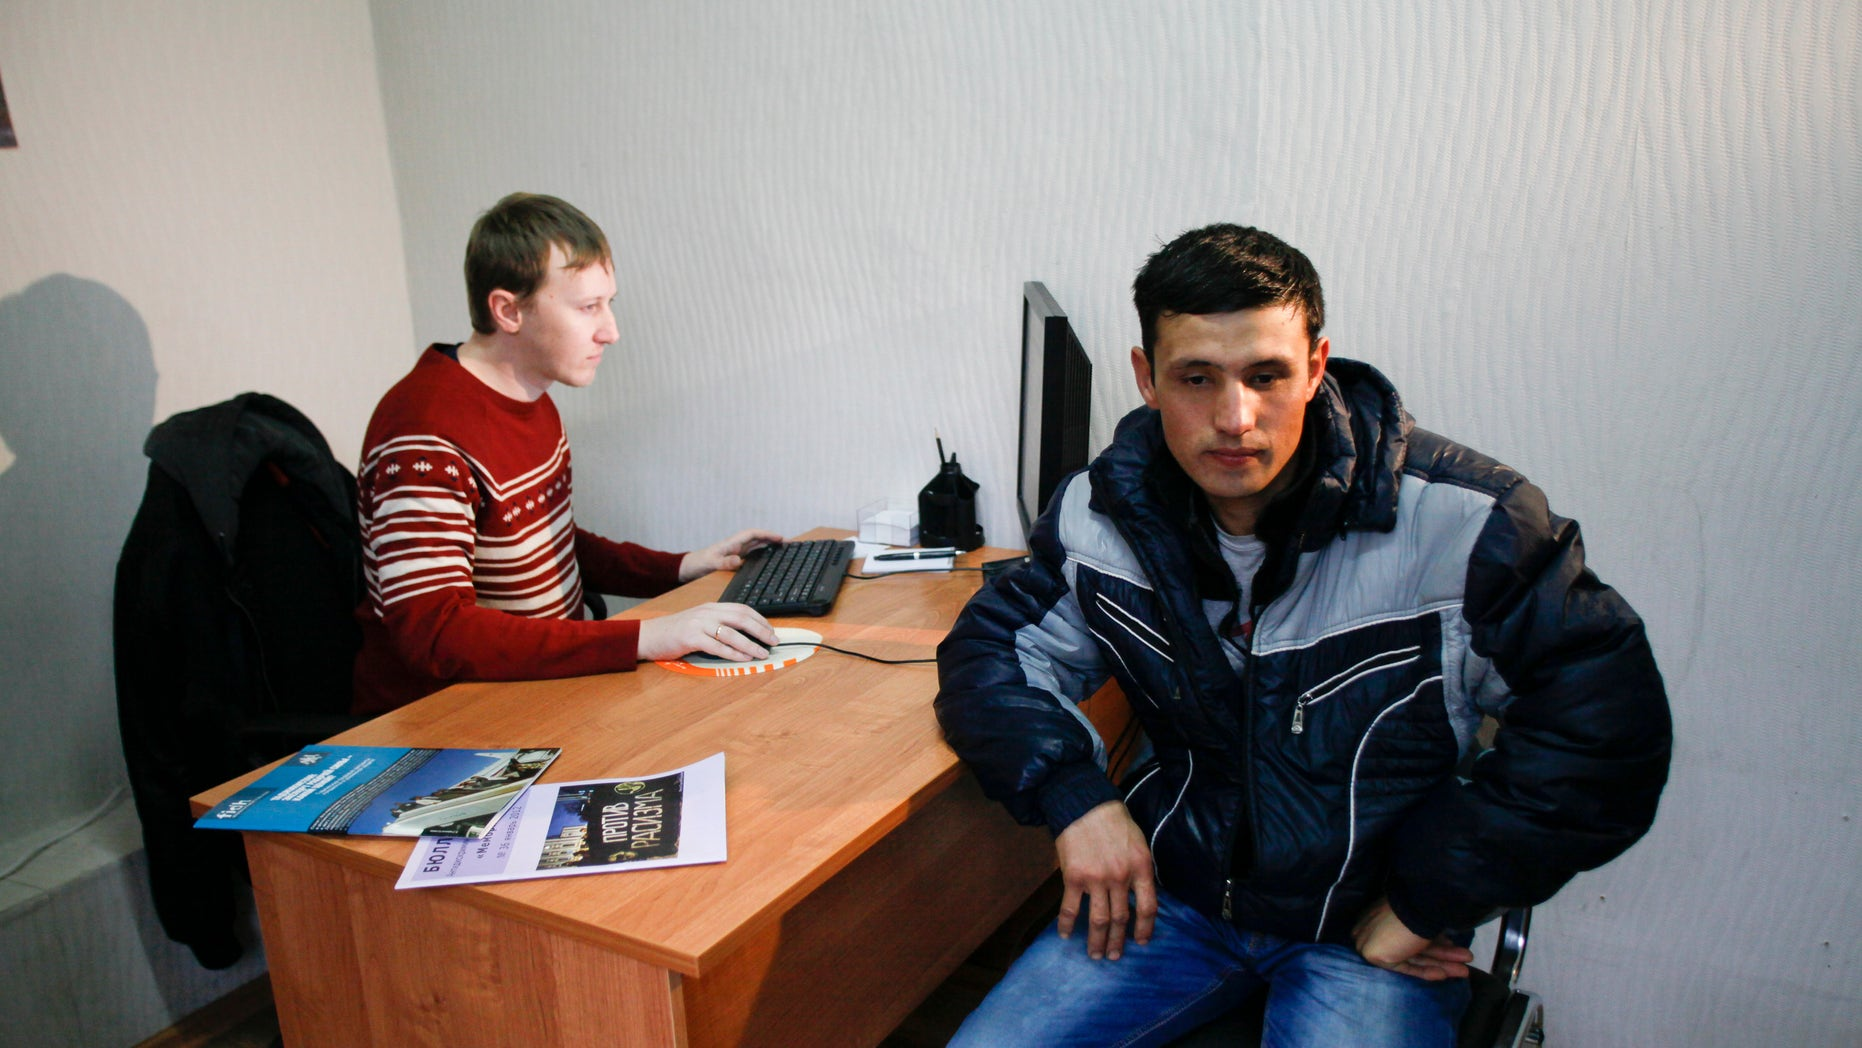 Jan. 30, 2013: In this photo Eshkobil Ashurov visits a consultancy for migrant workers in Sochi run by Semyon Simonov, left.